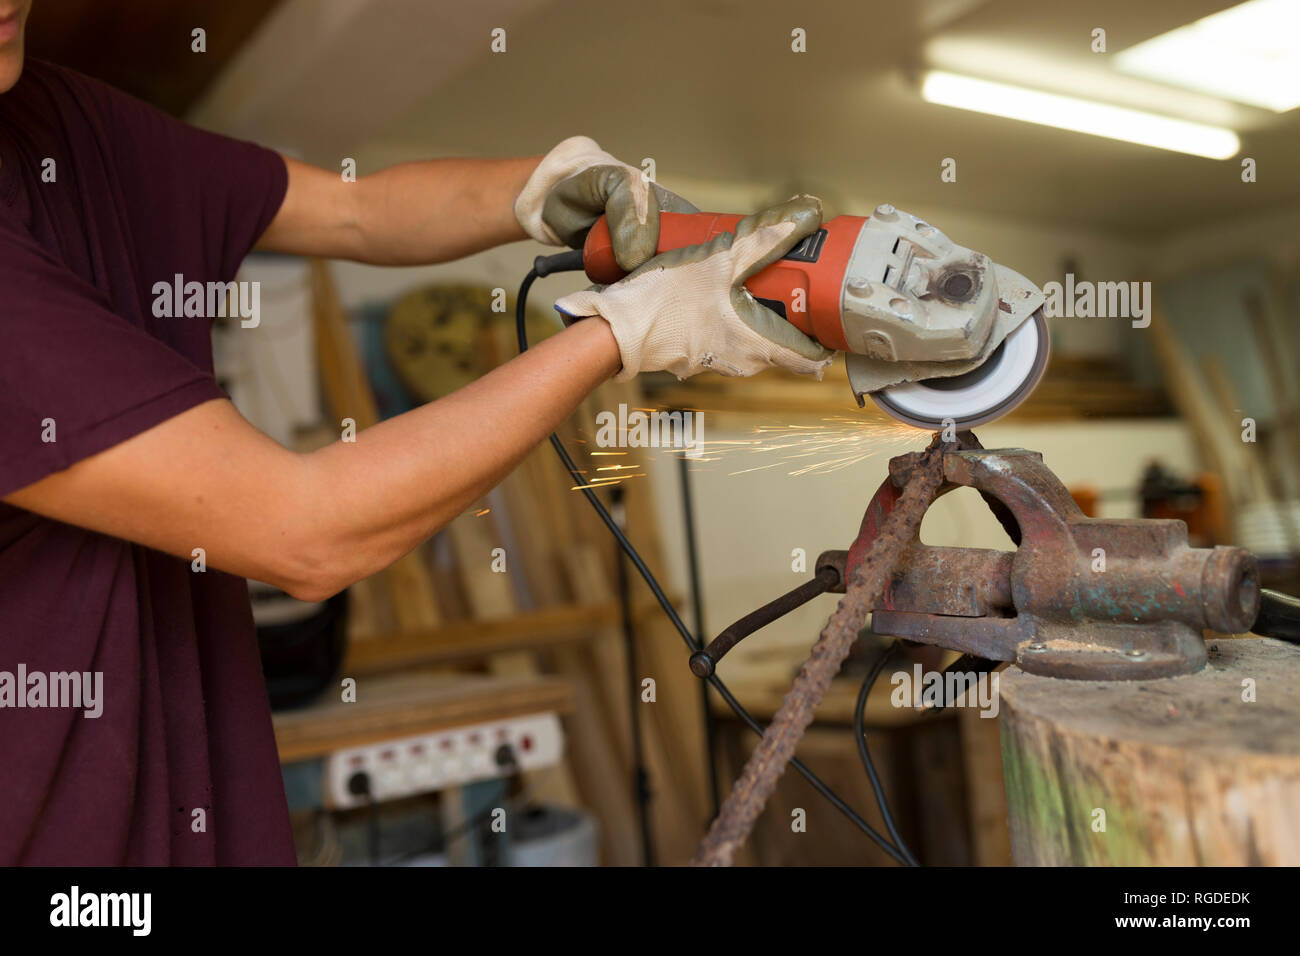 Craftswoman using angle grinder in her workshop - Stock Image